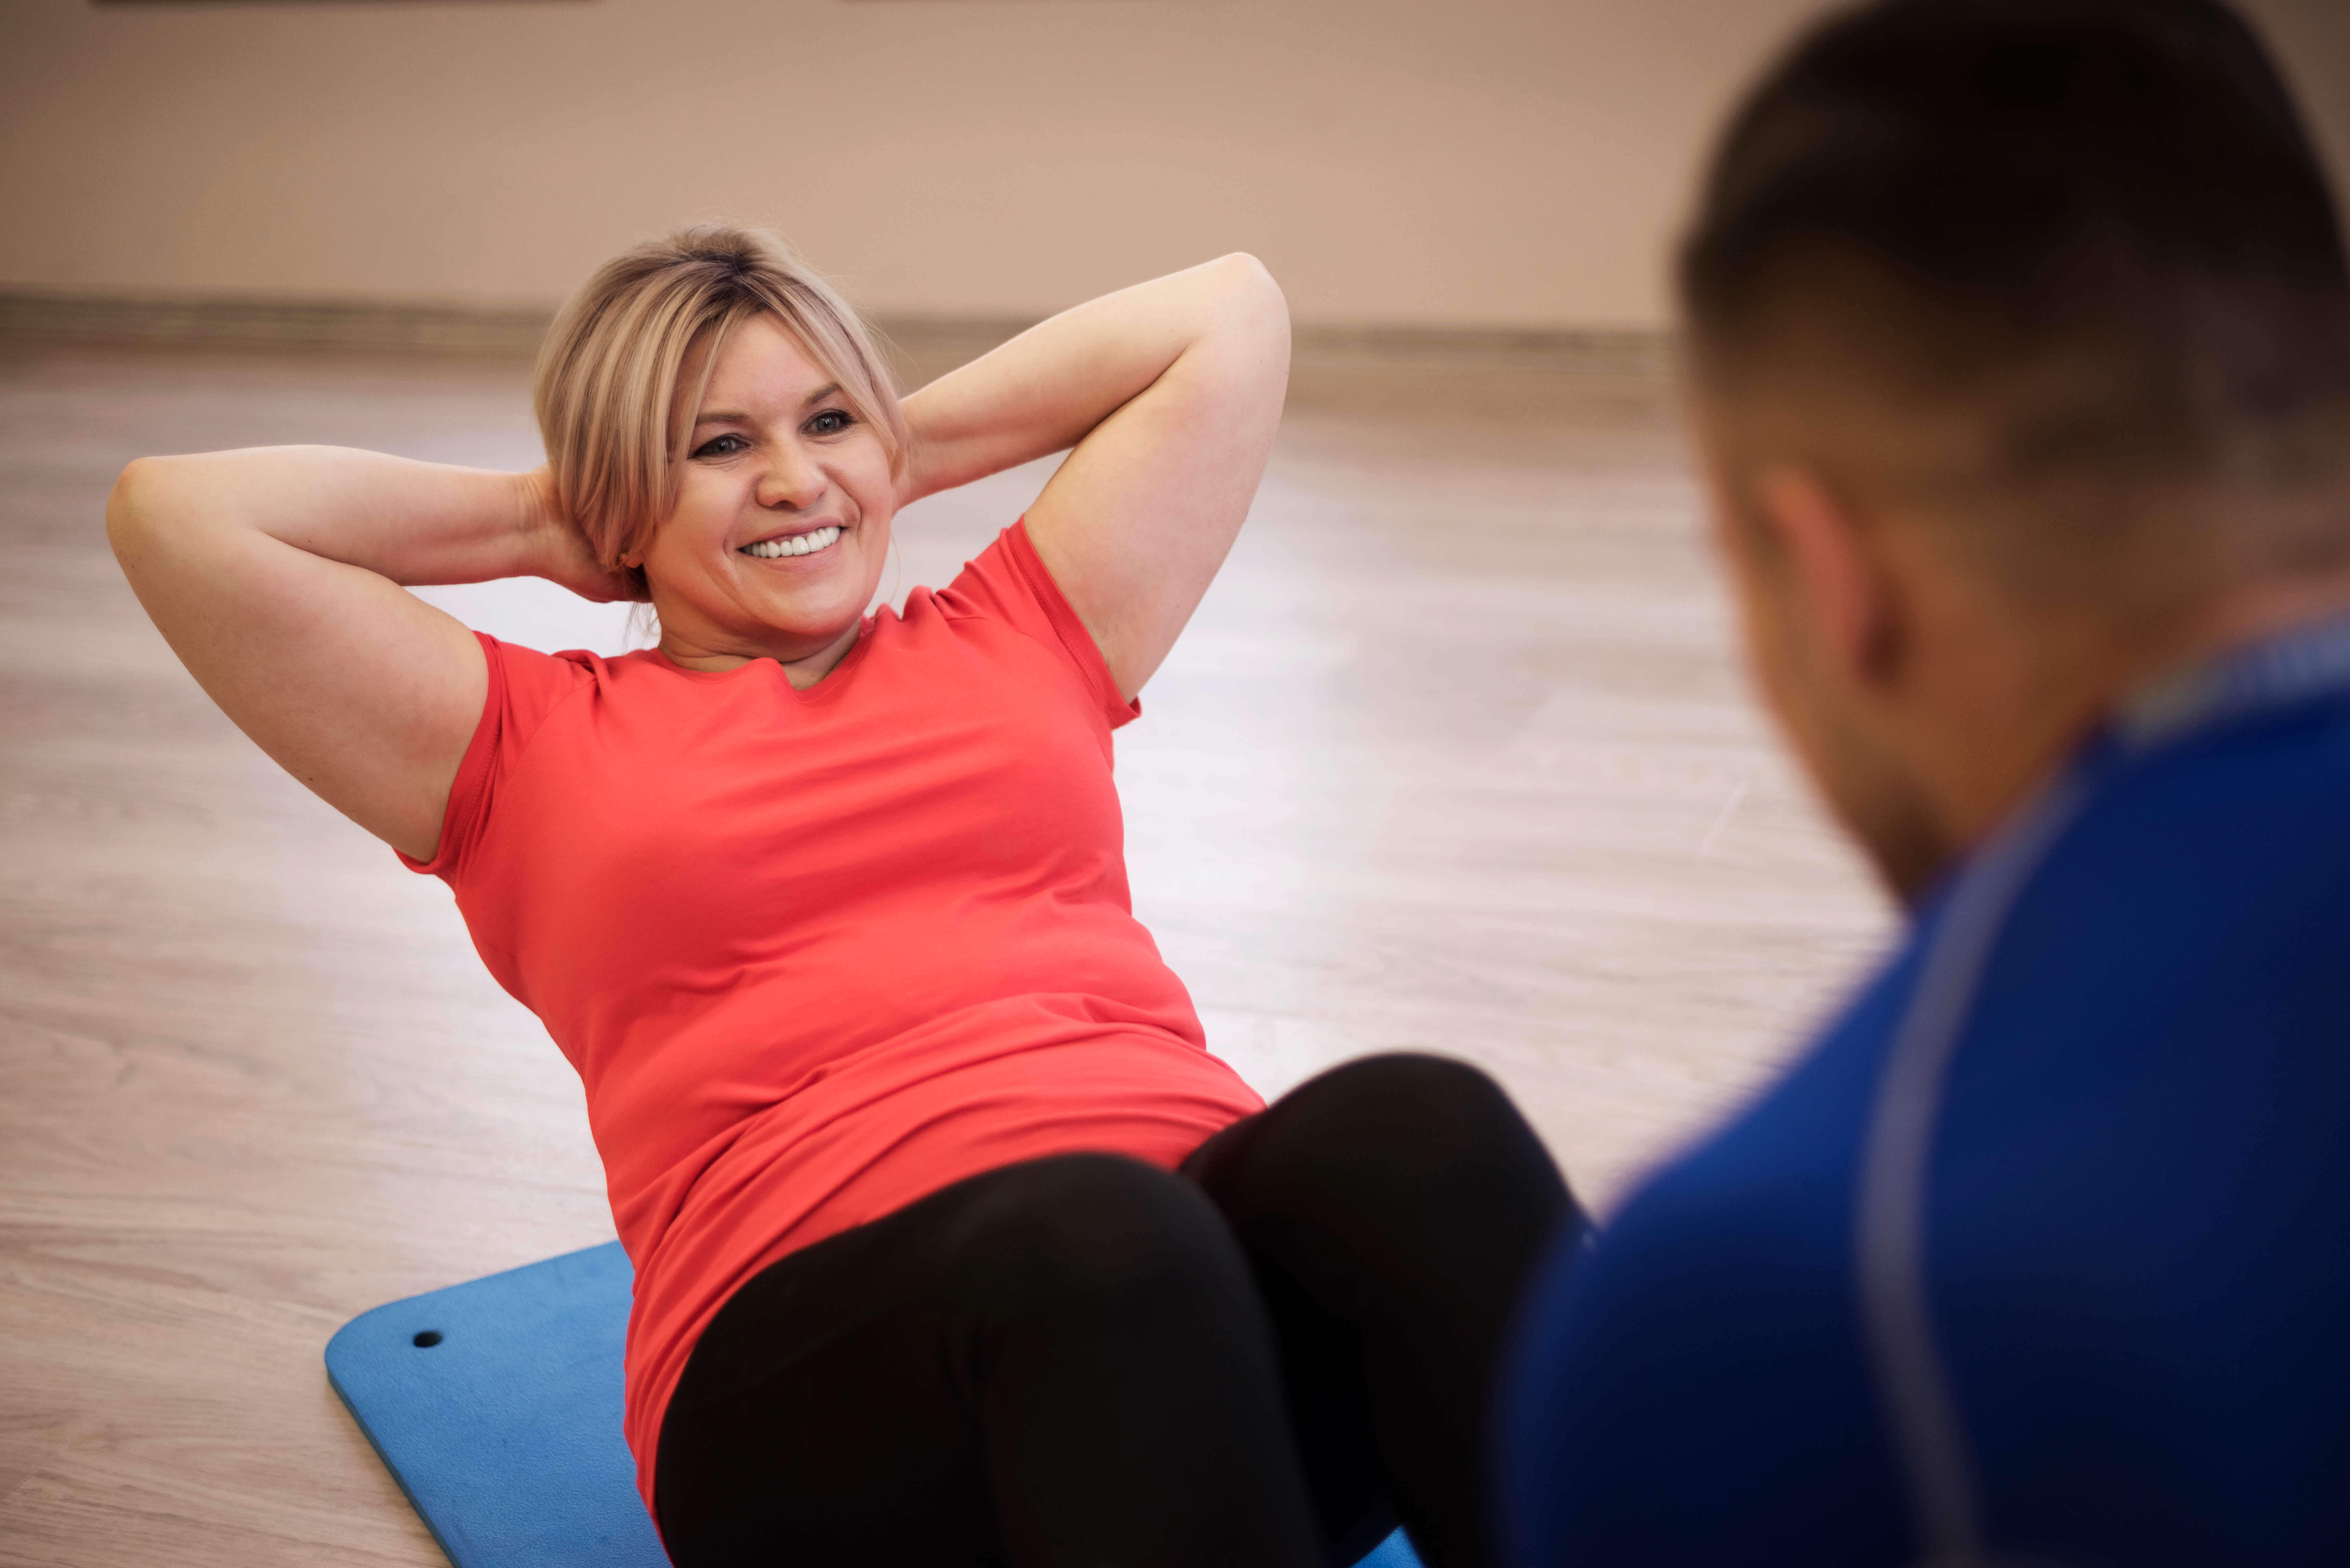 Personal trainer holding the feet of a mature woman doing crunches